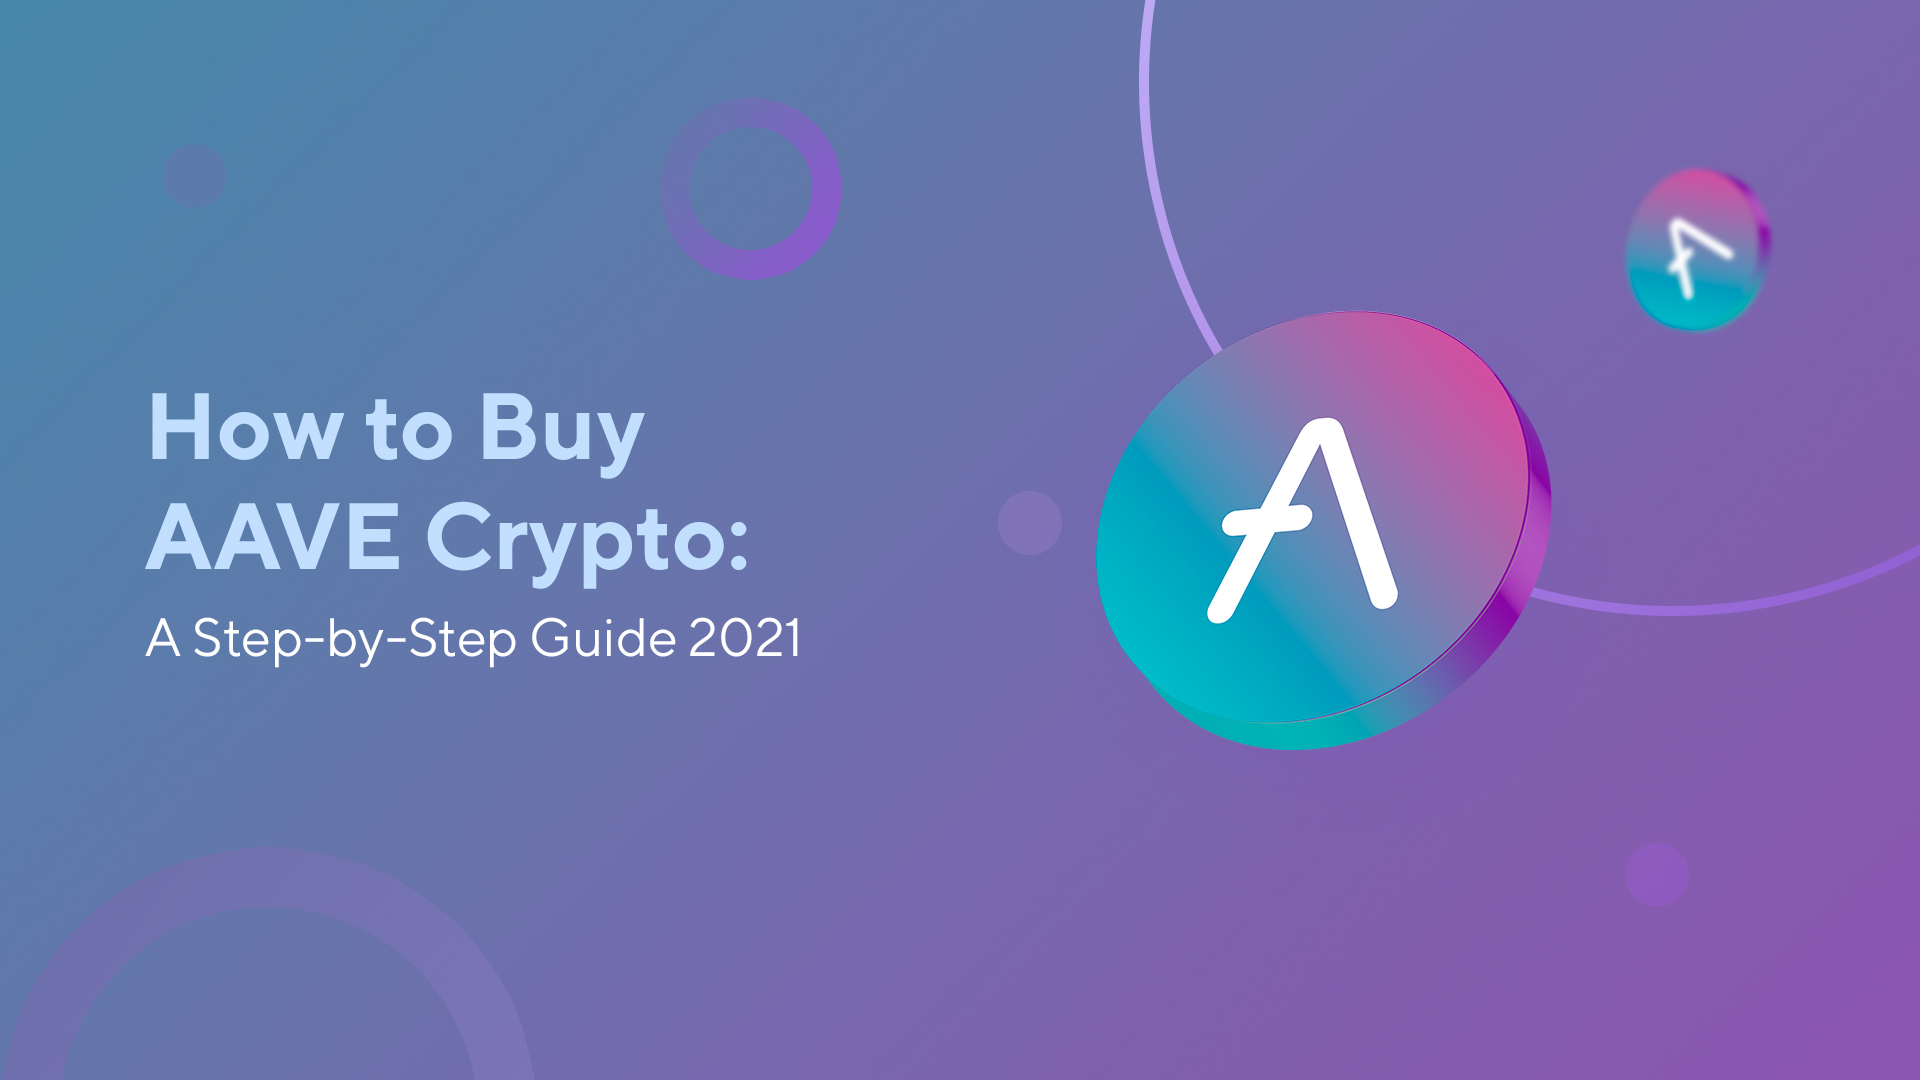 How to Buy AAVE Crypto: A Step-by-Step Guide 2021